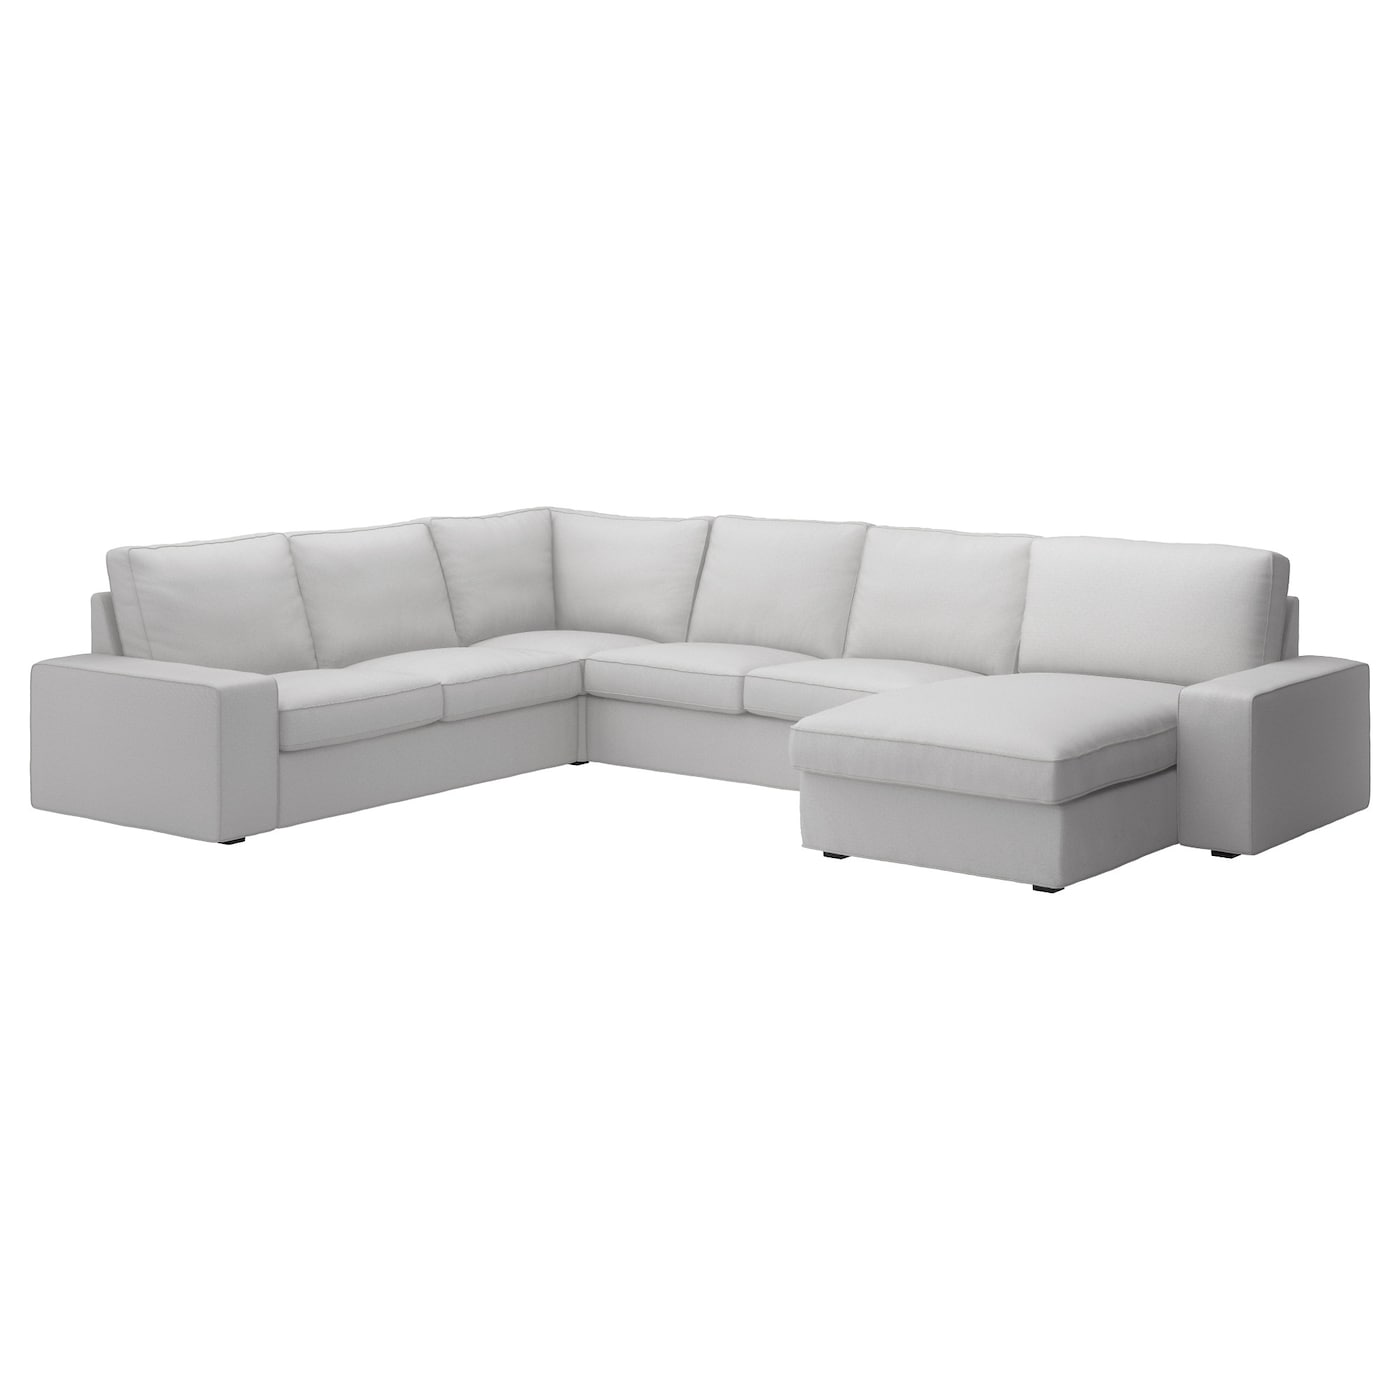 Kivik Corner Sofa 2 2 With Chaise Longue Ramna Light Grey Ikea